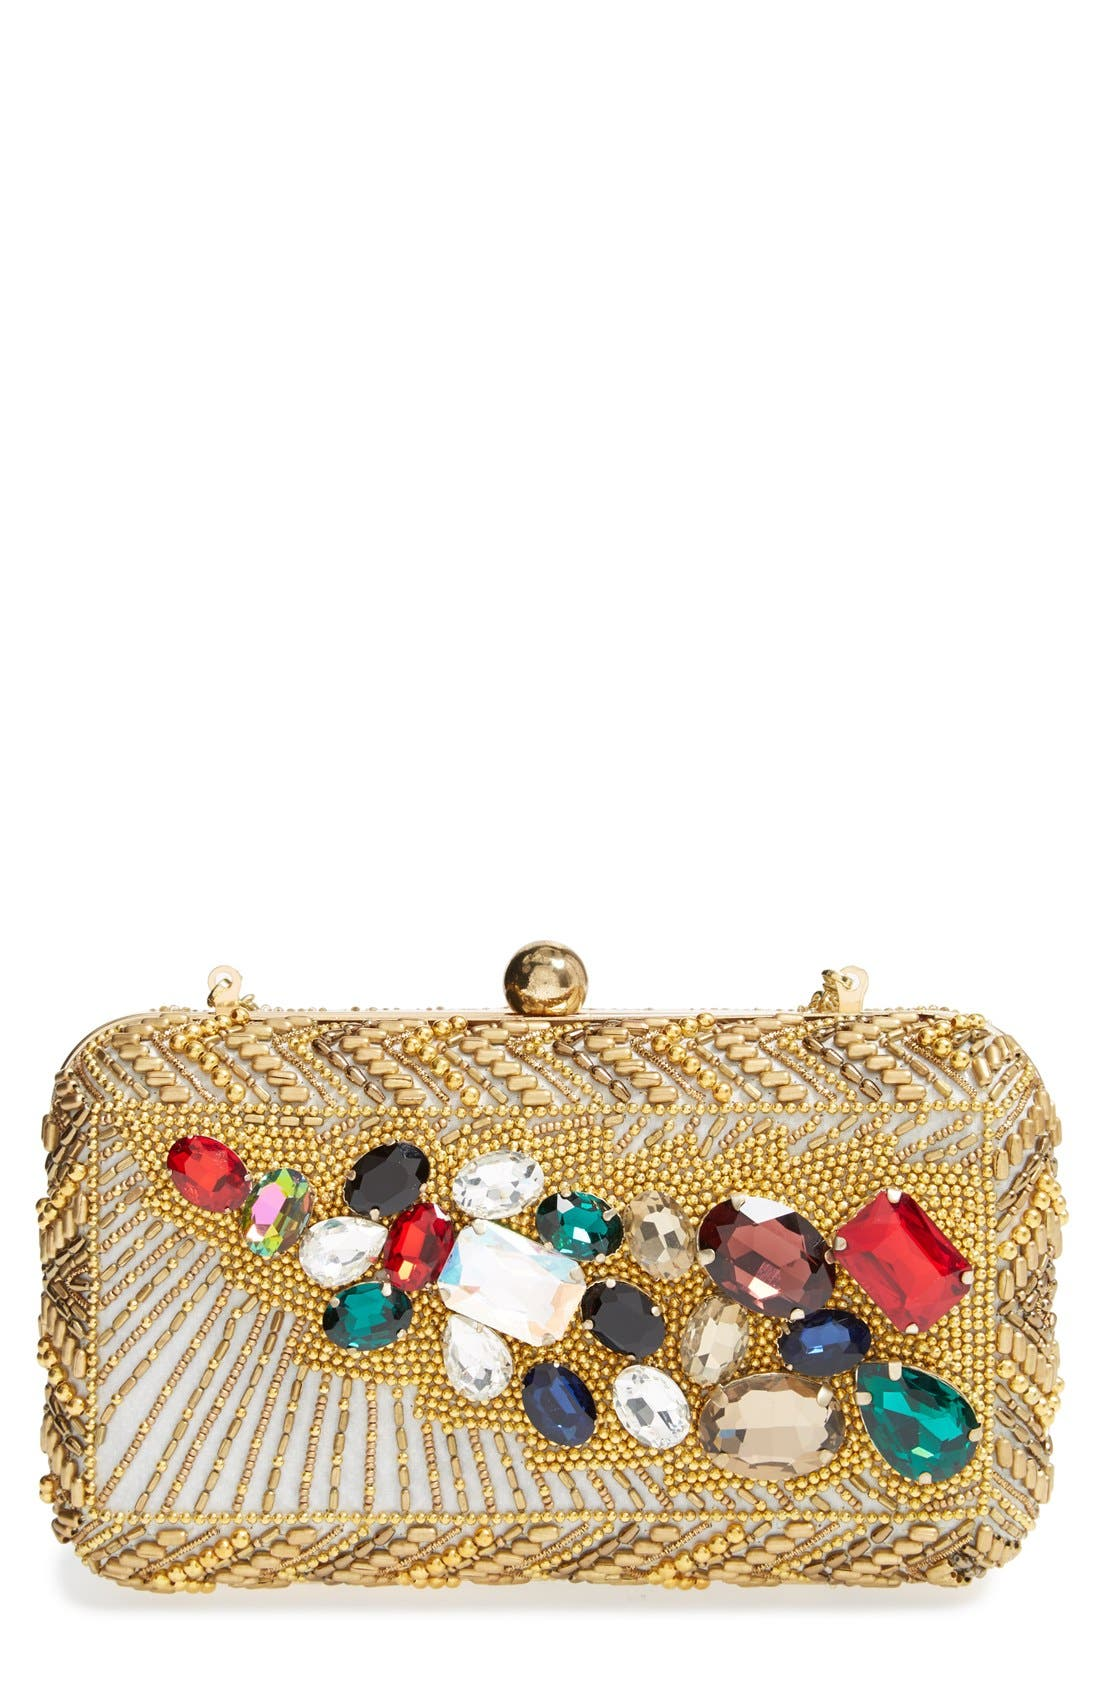 Main Image - Natasha Couture 'Left Bank' Embellished Box Clutch